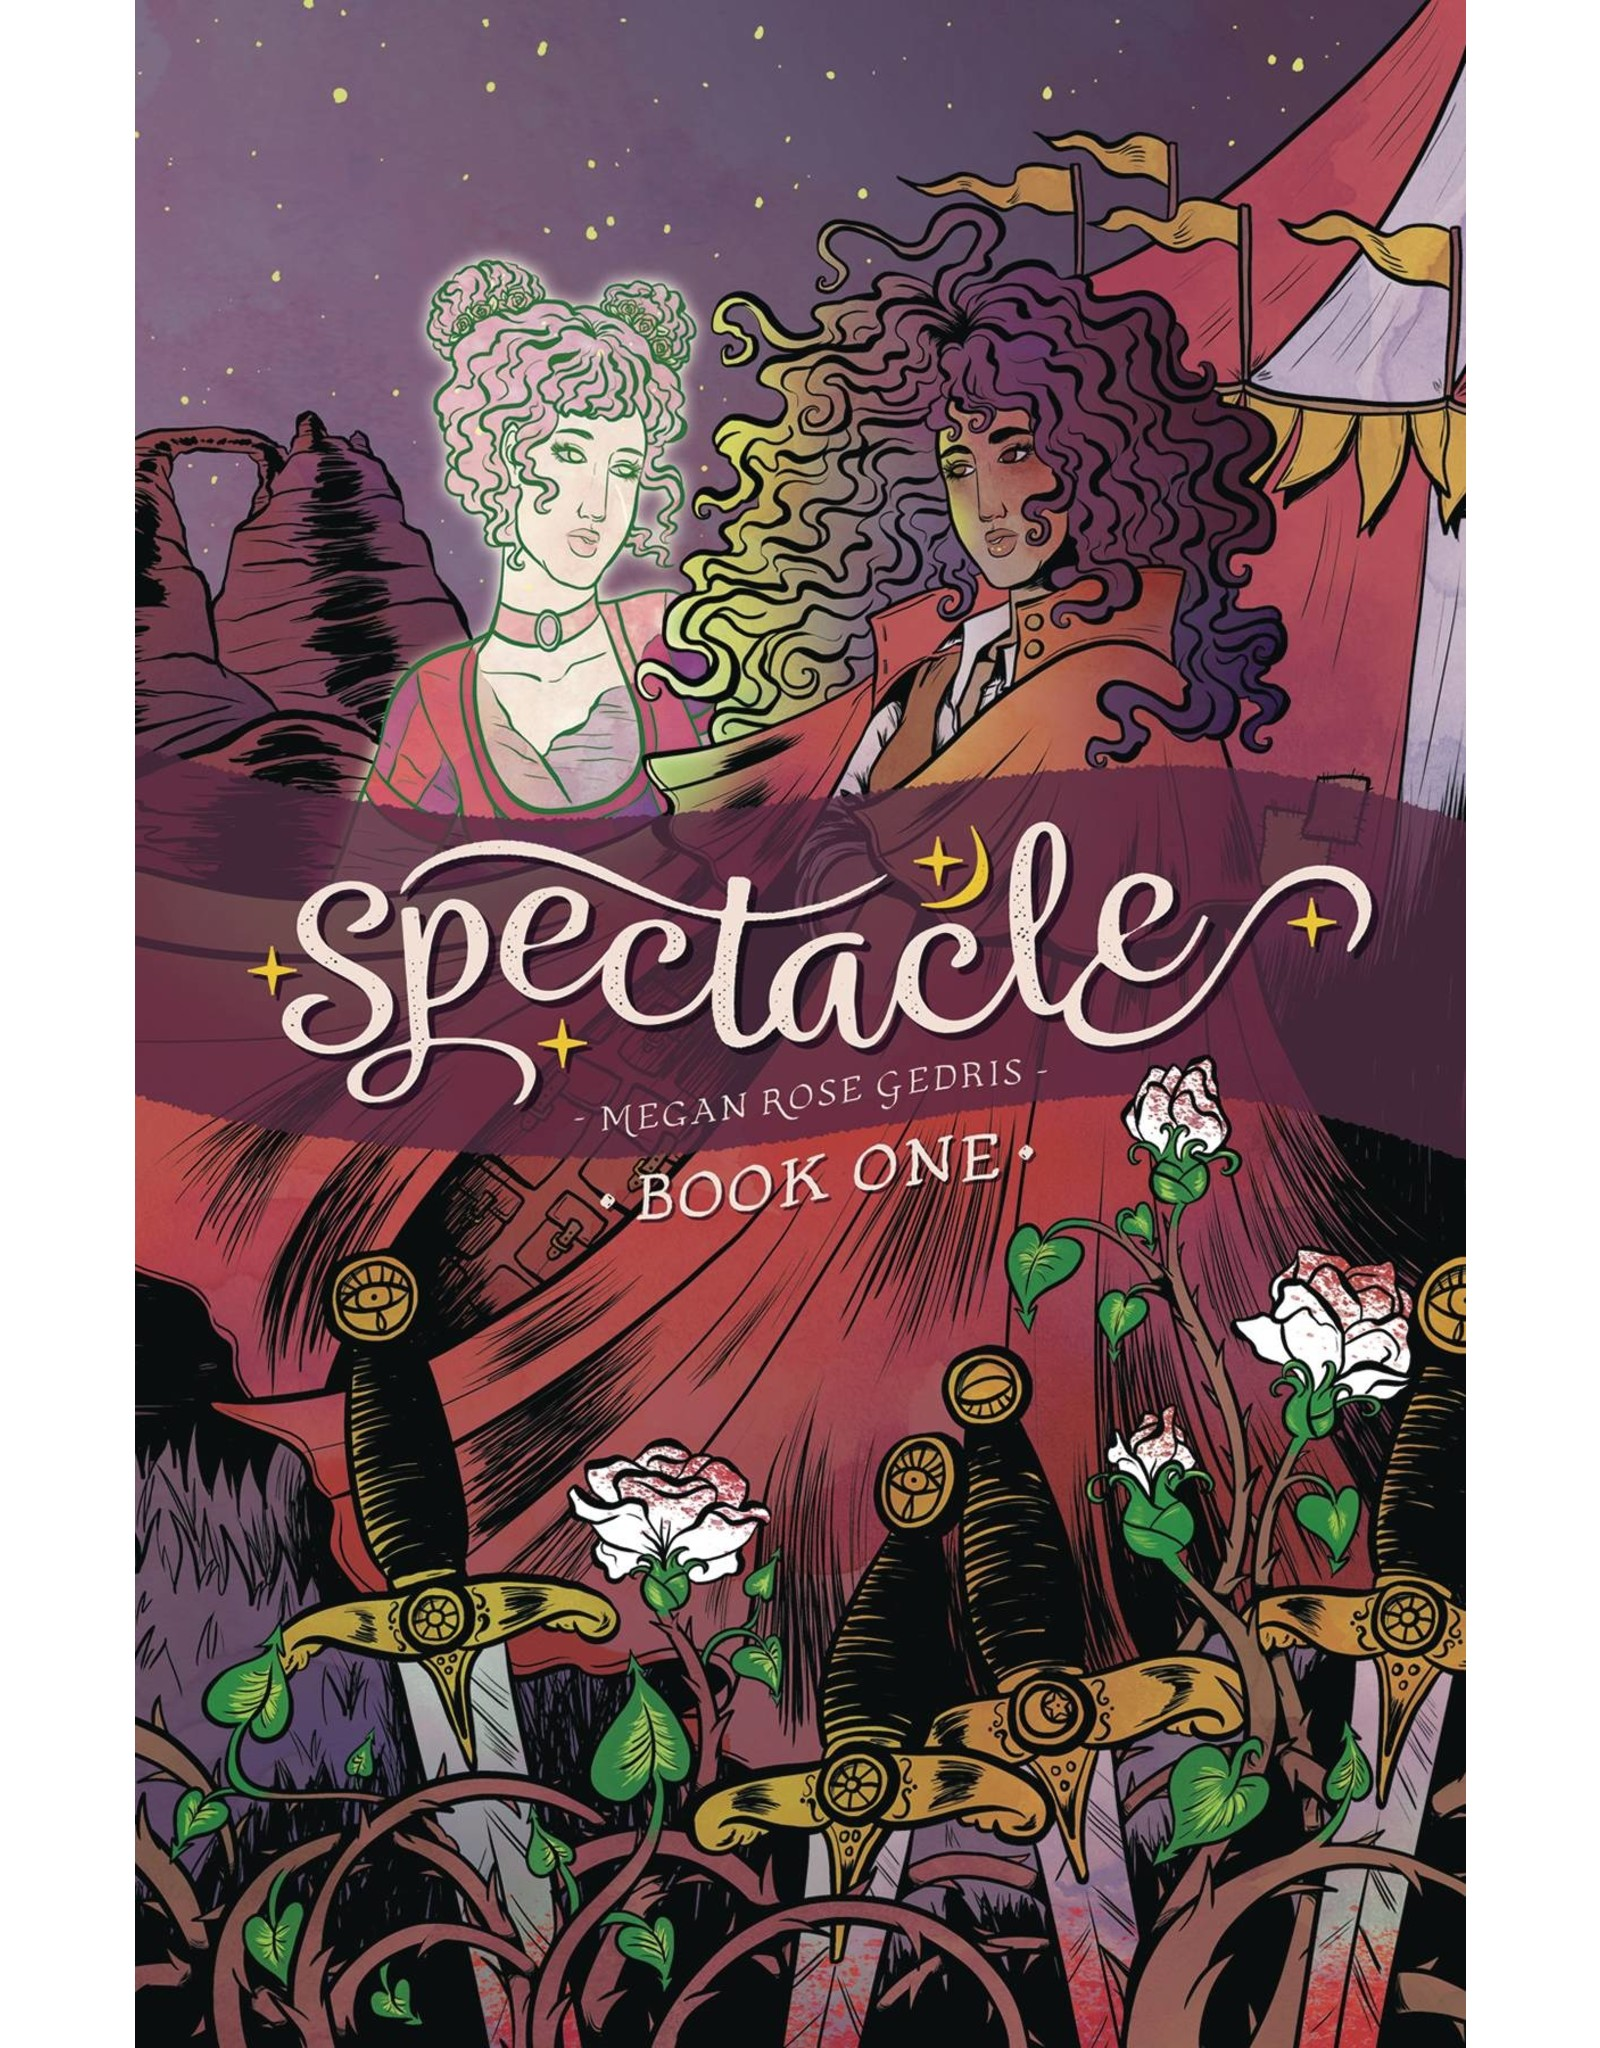 ONI PRESS INC. SPECTACLE TP VOL 01